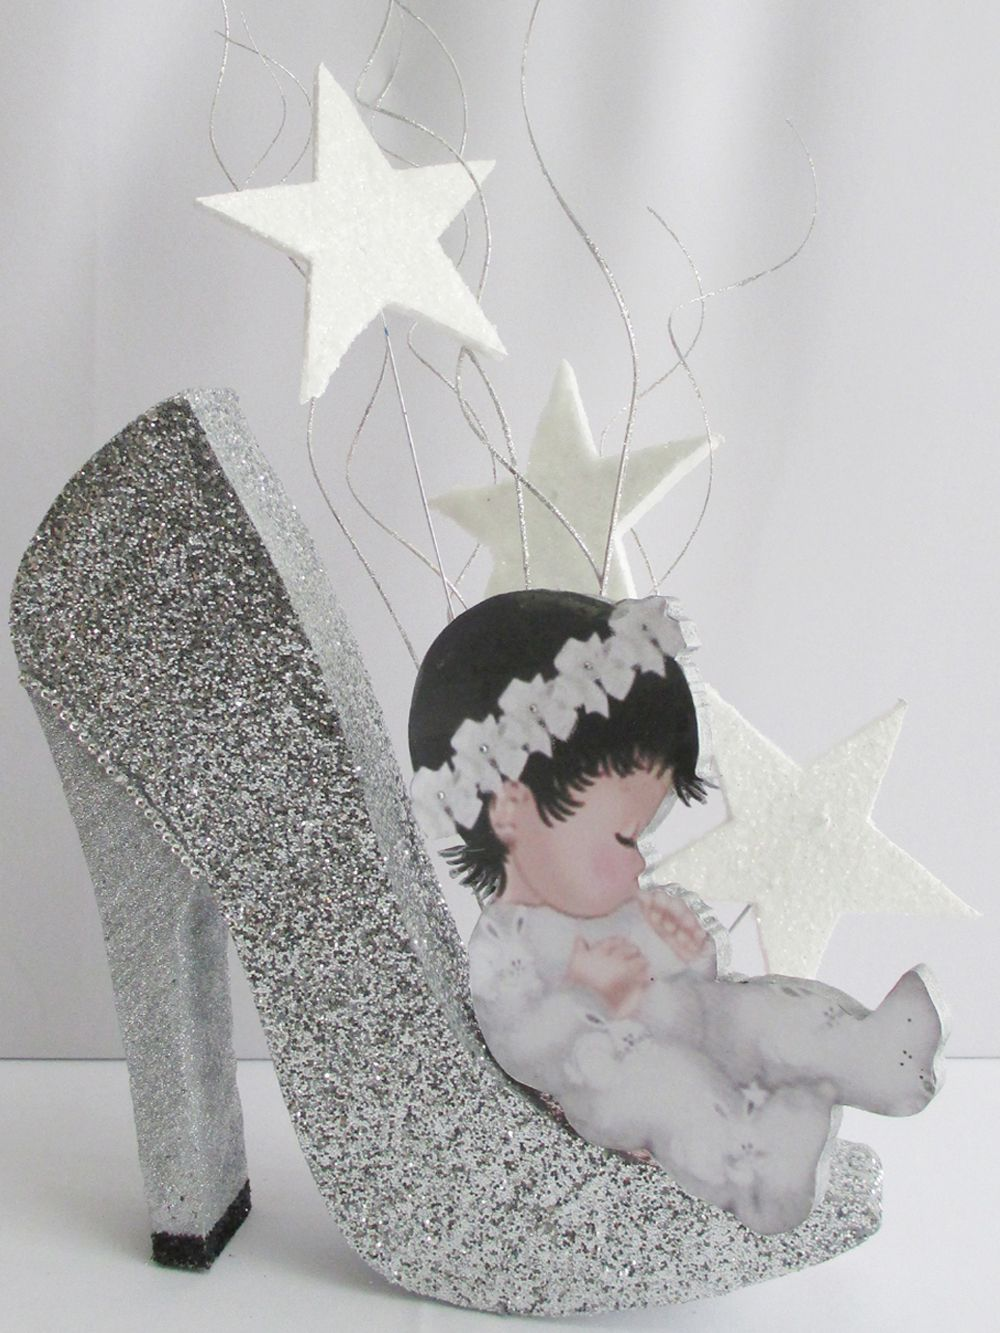 Baby on high heeled shoe centerpiece | Designs by Ginny - 21st Birthday Center Piece Ideas 21st And 50th Birthday